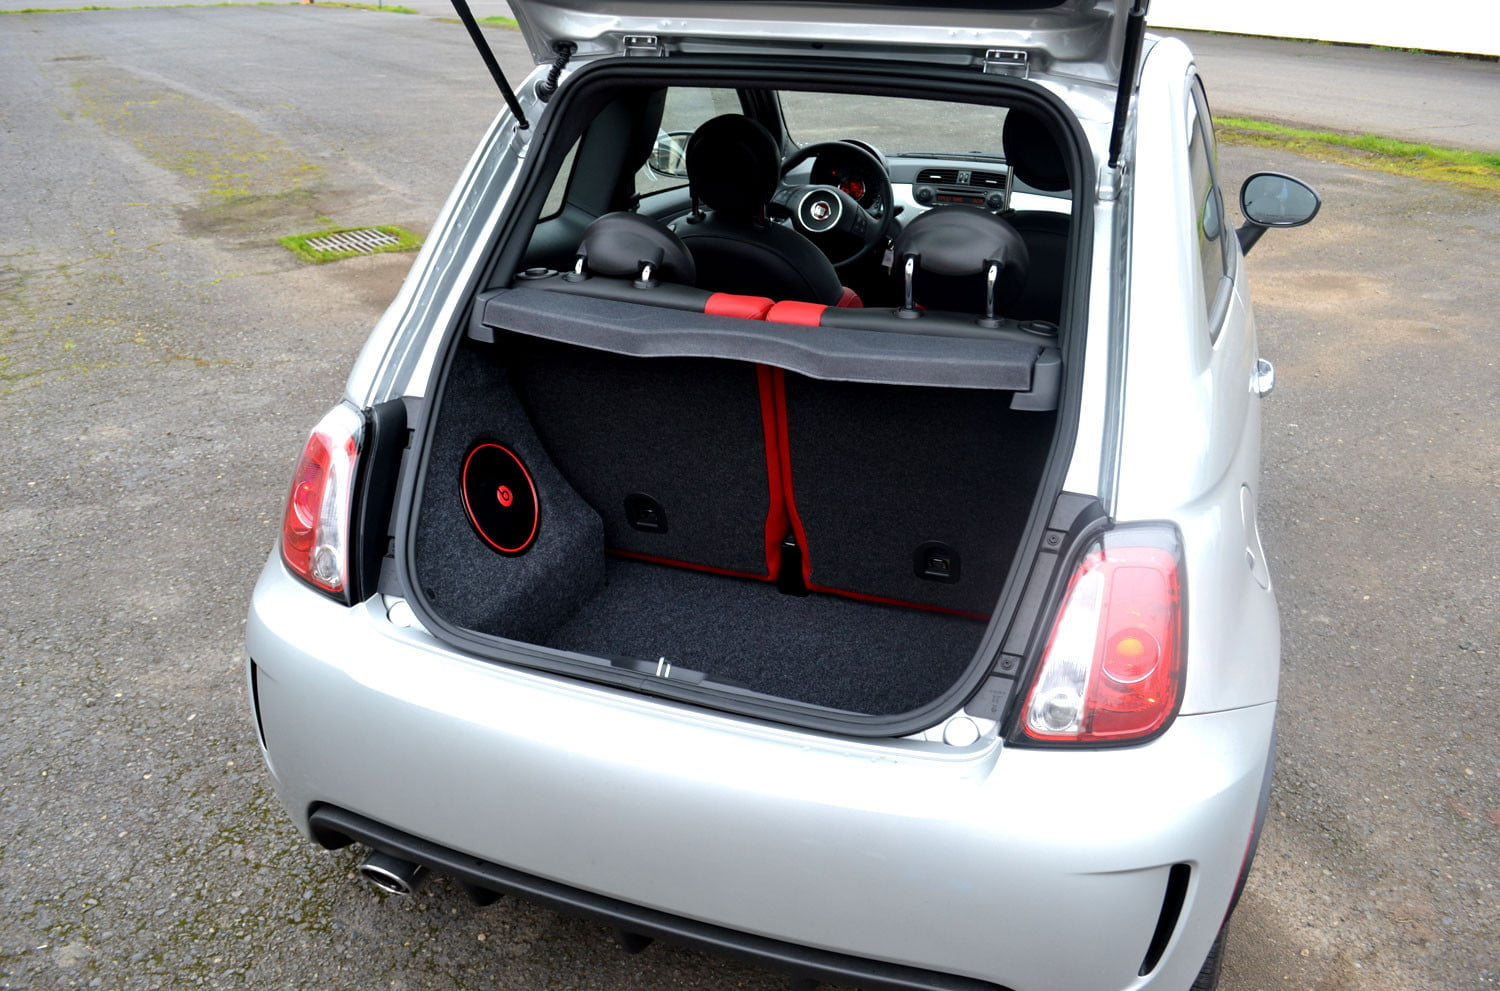 Fiat 500 Abarth Trunk 2013 Fiat 500 r...